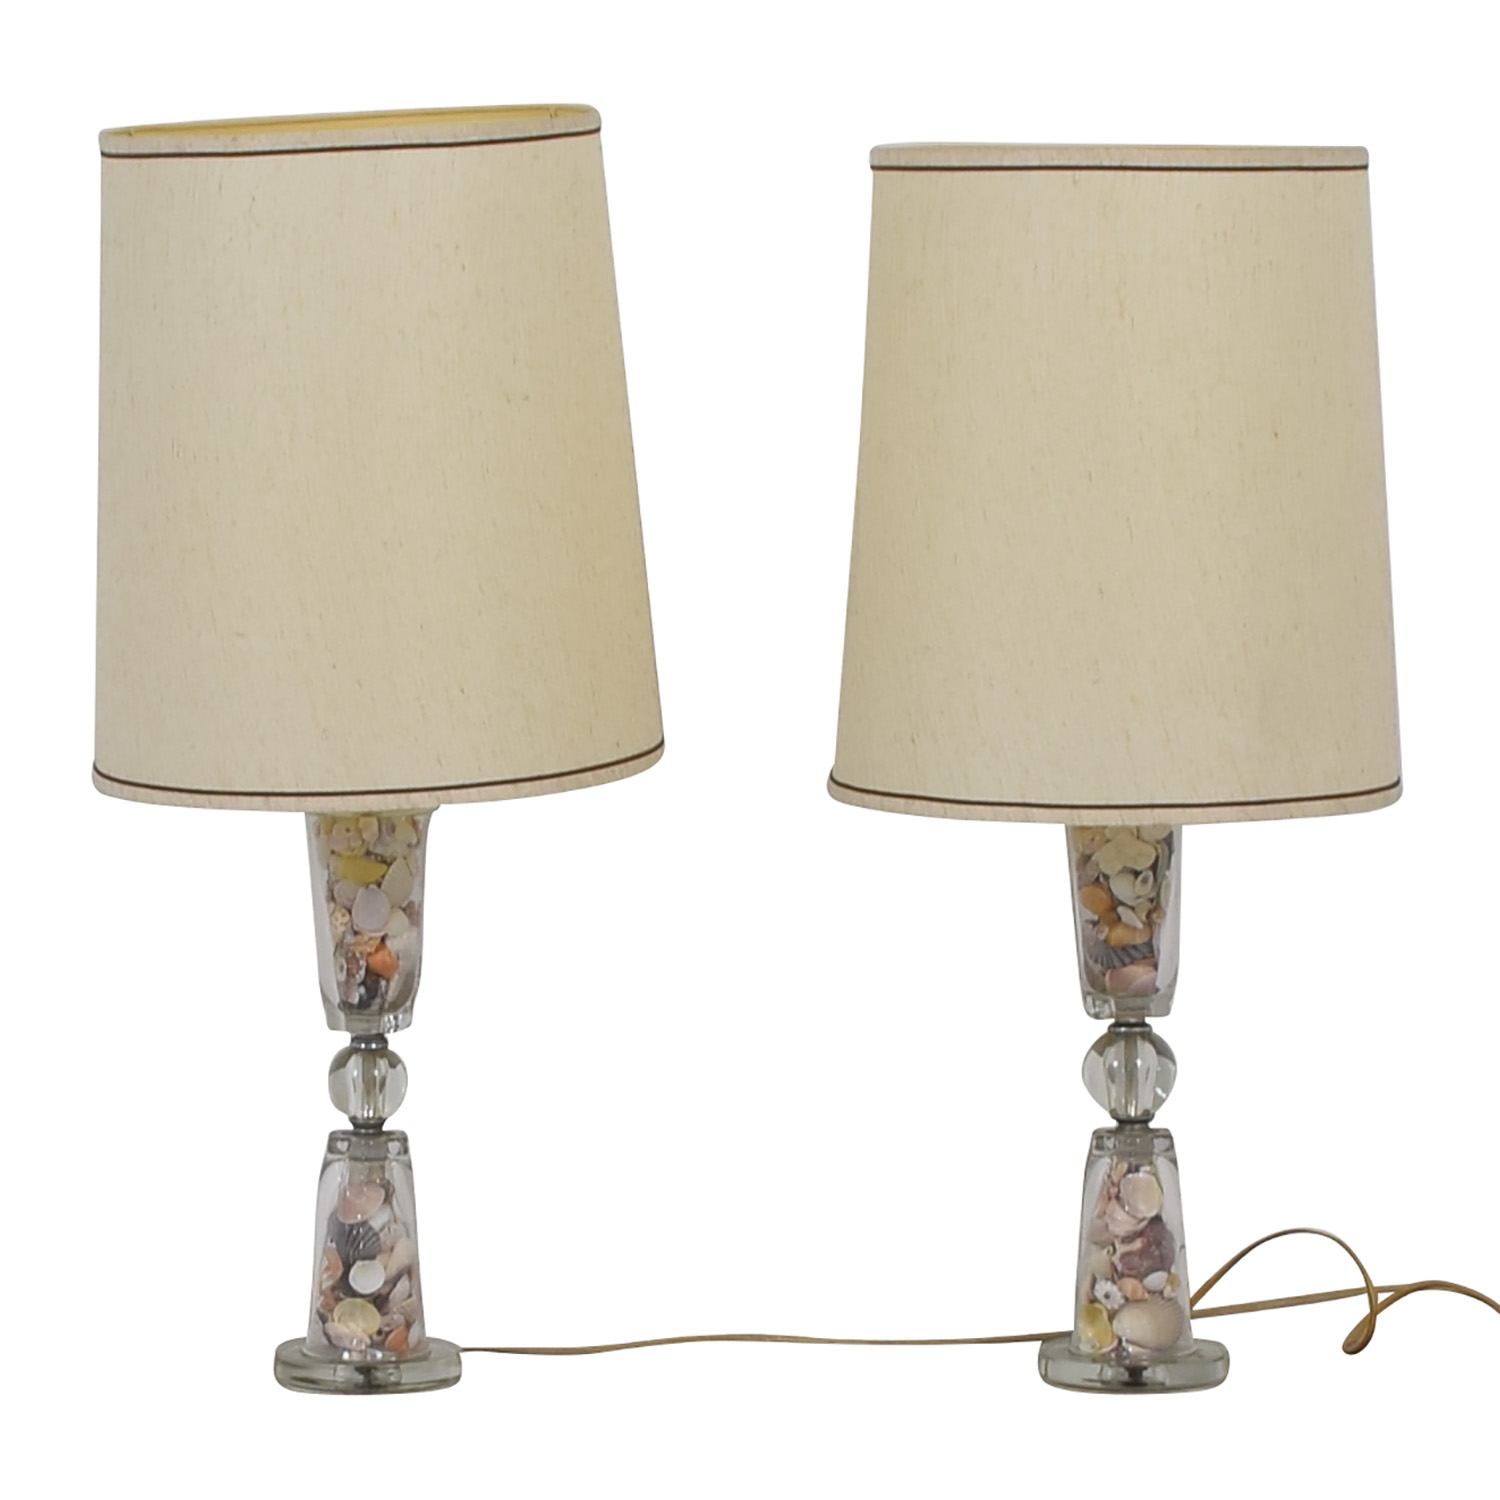 Seashell-Filled Glass Table Lamps on sale